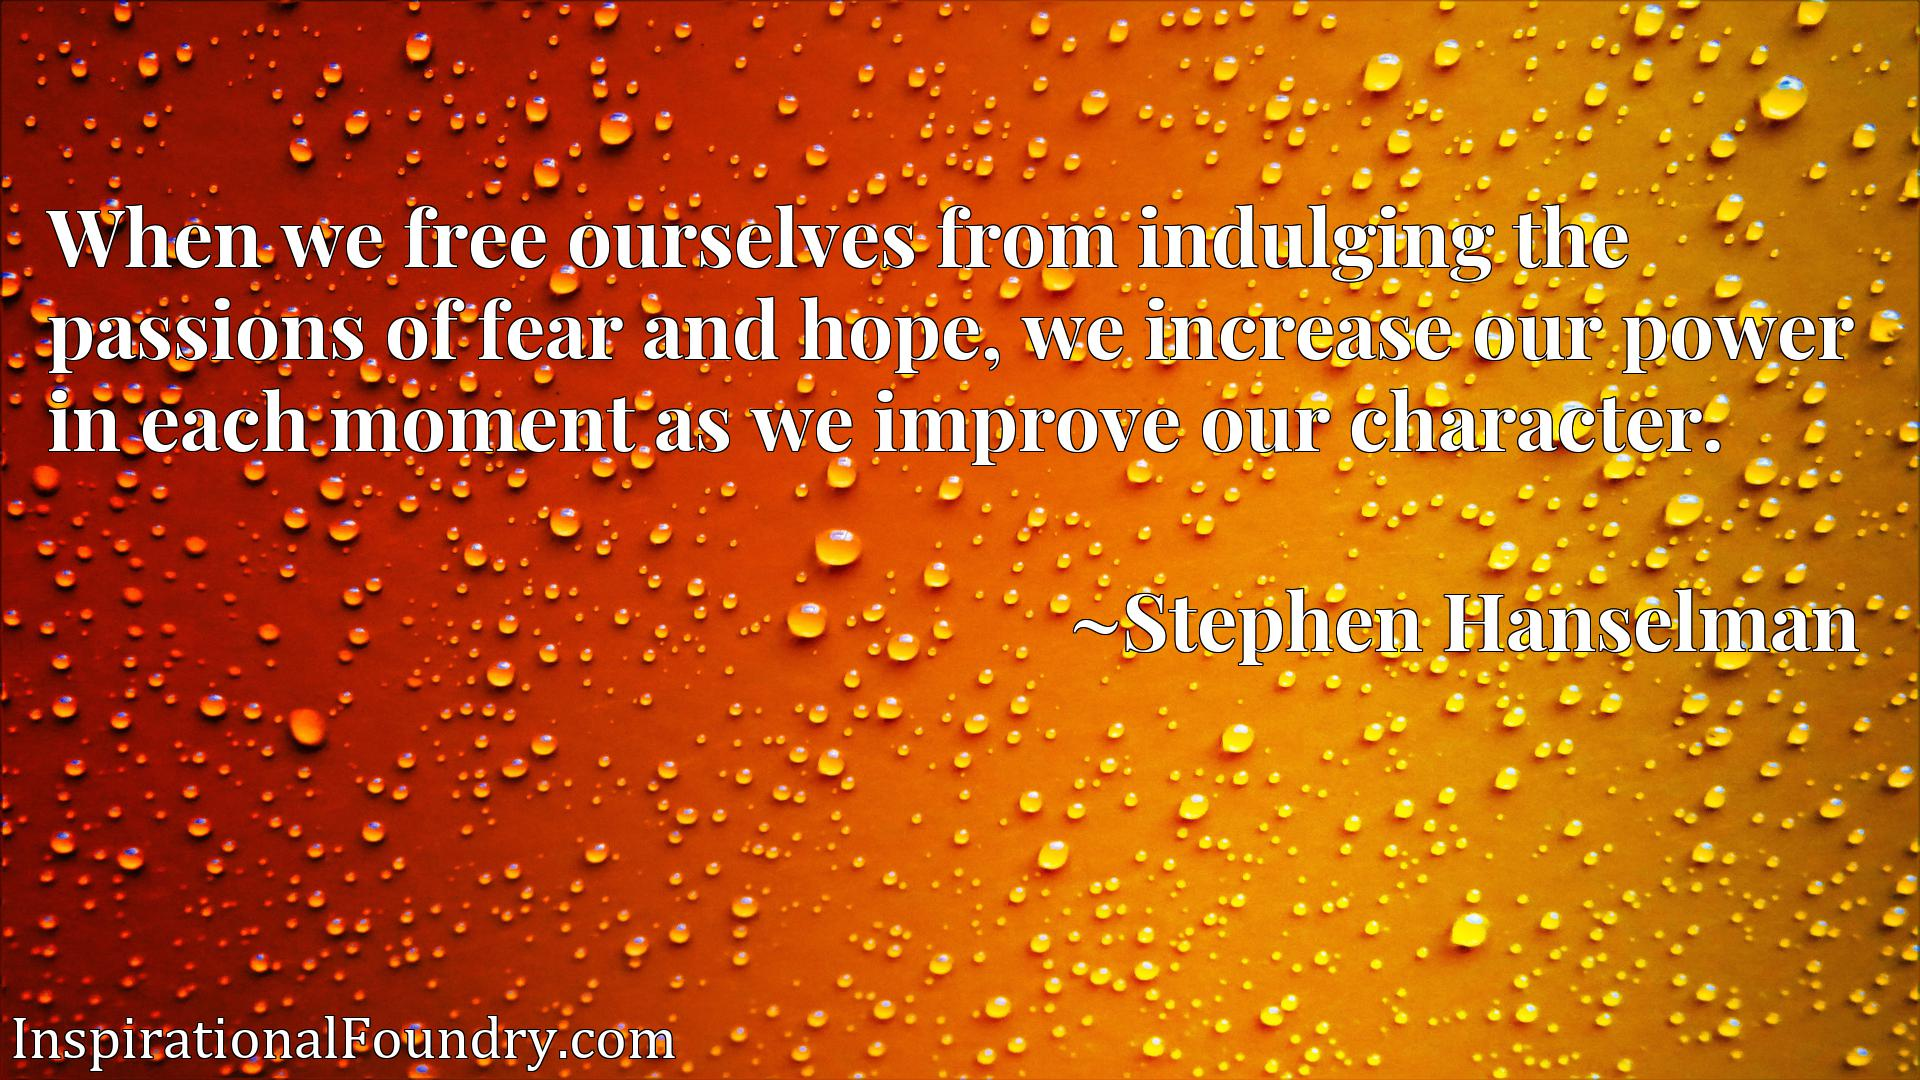 When we free ourselves from indulging the passions of fear and hope, we increase our power in each moment as we improve our character.